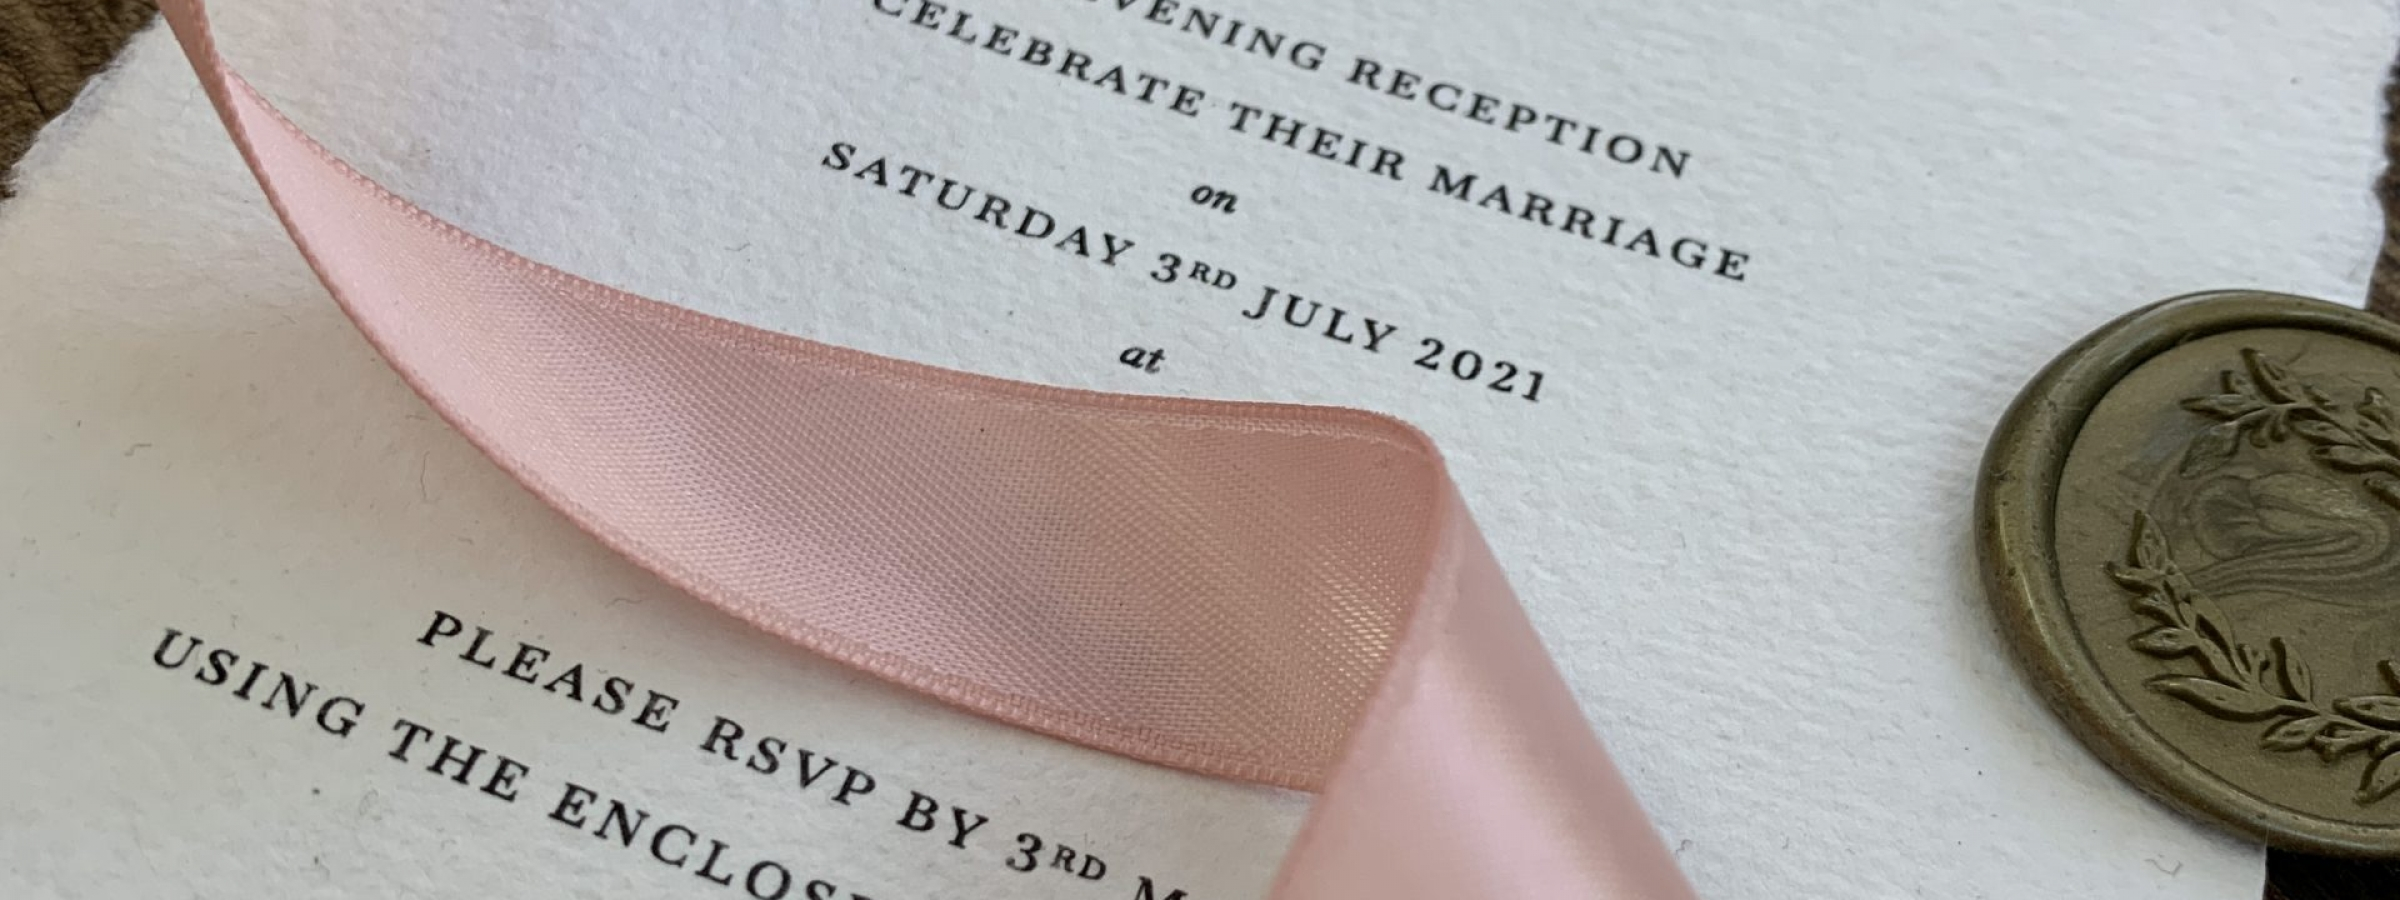 Handmade paper, rustic wedding invitation